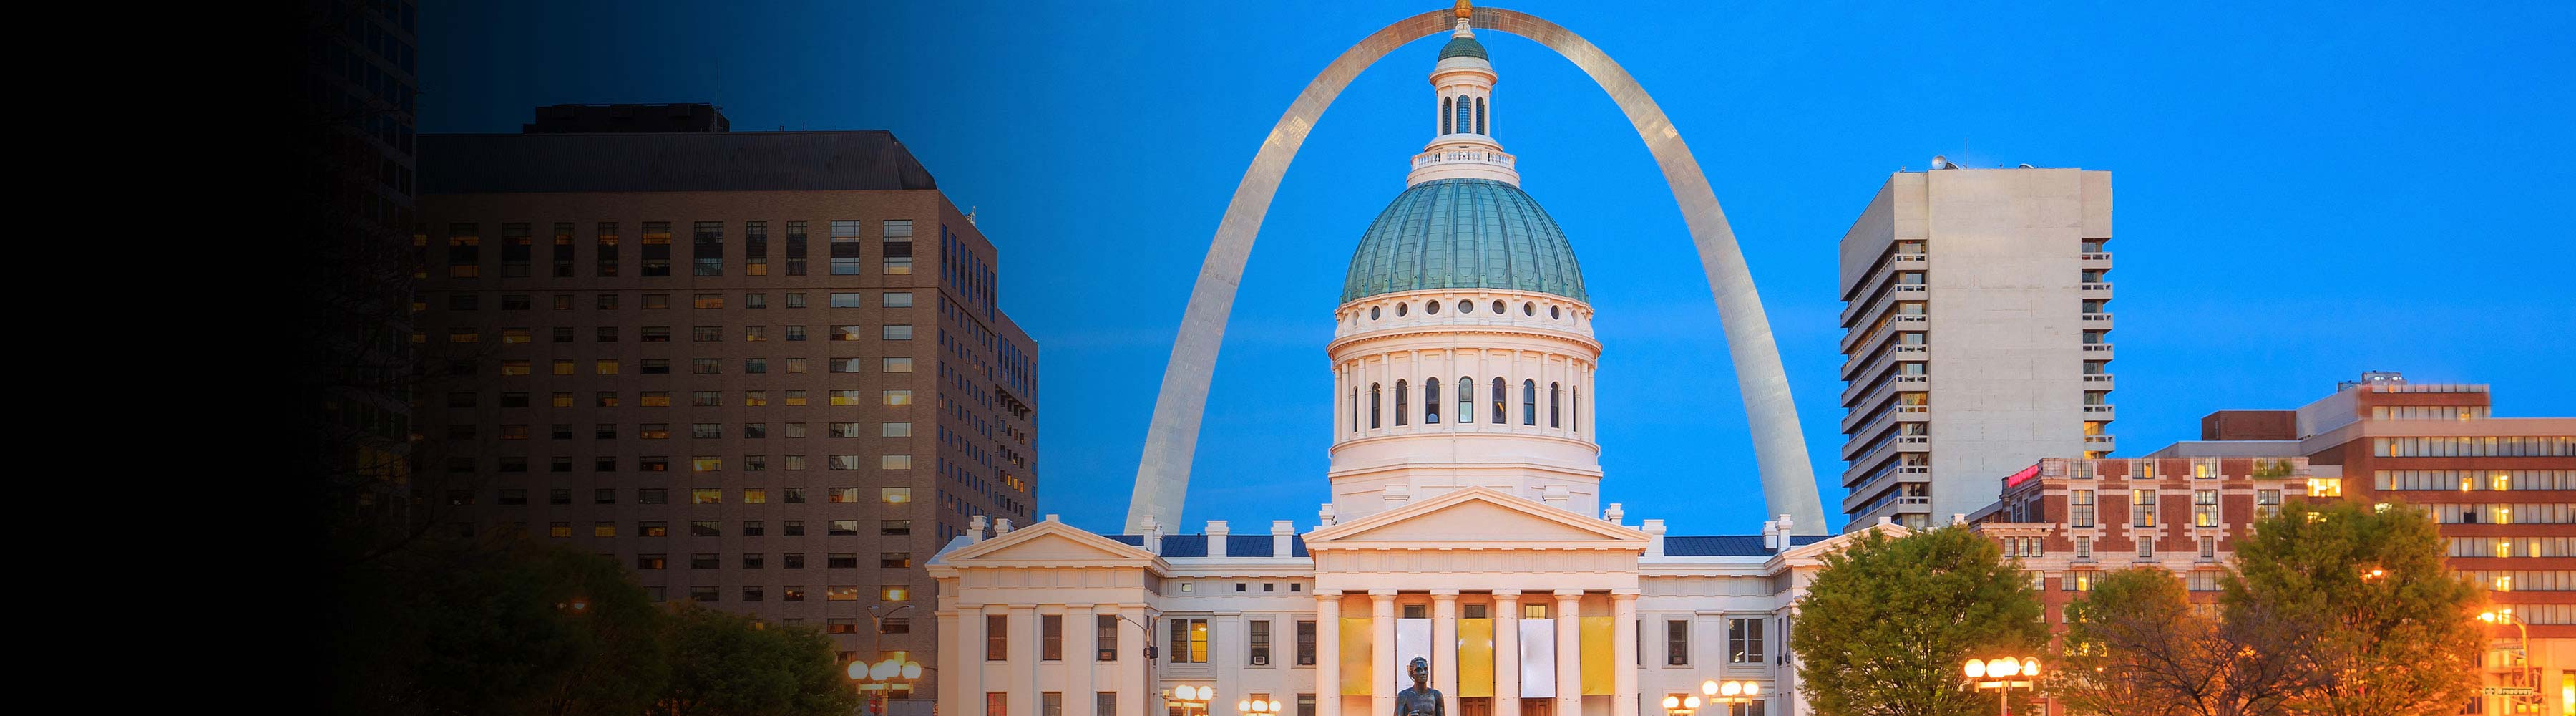 Personal Injury Lawyers in Missouri | Law Offices of Kanner